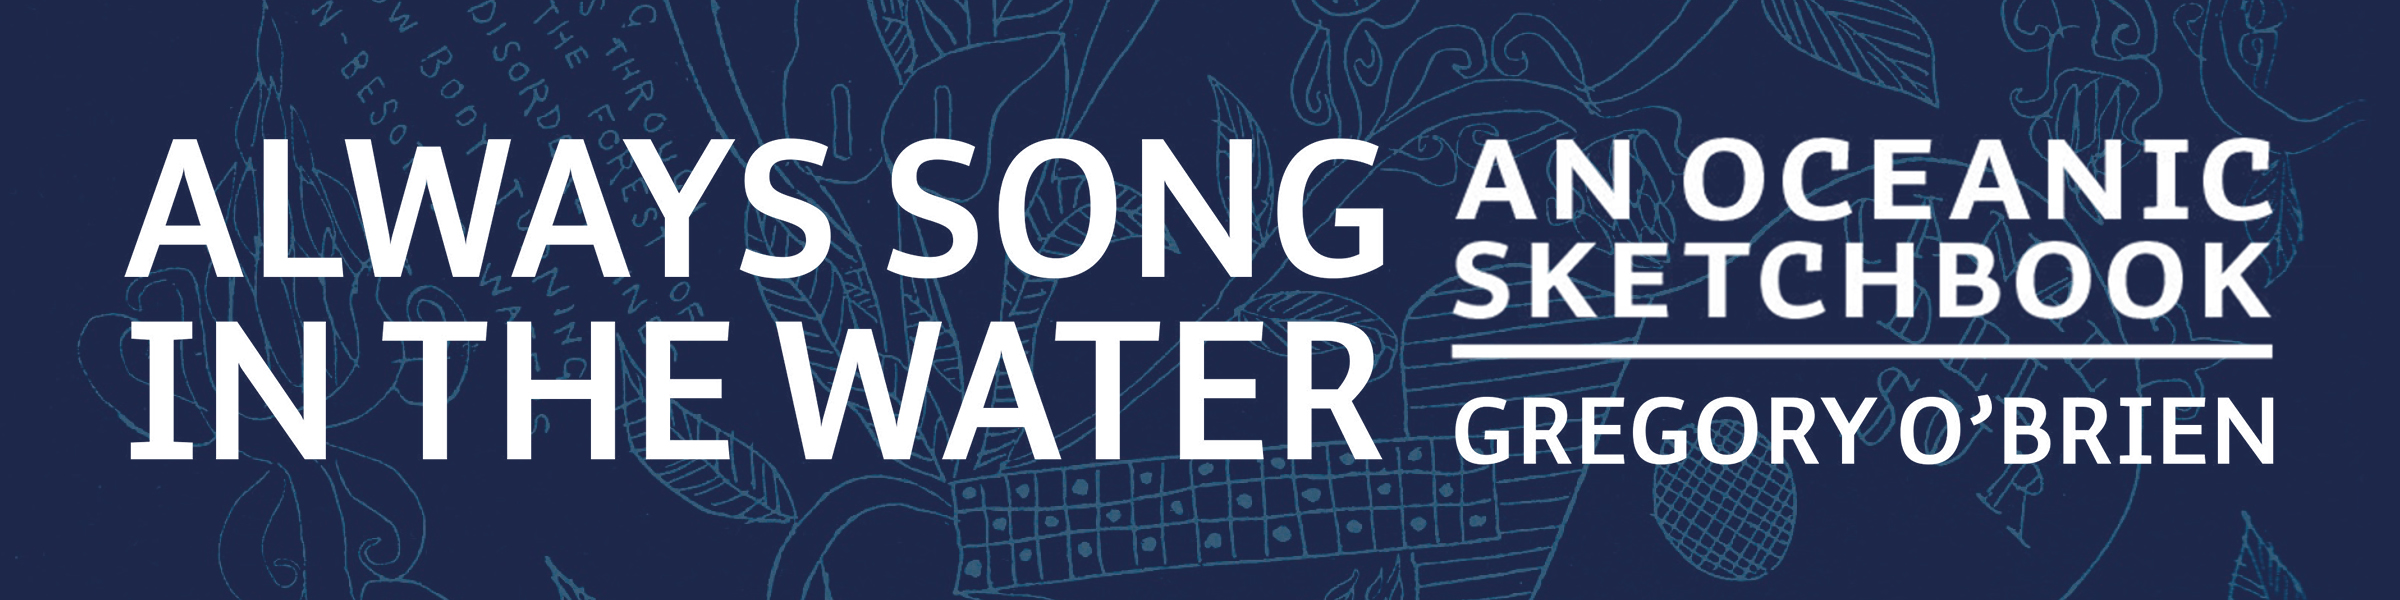 Always song in the water – An oceanic sketchbook Gregory O'brien